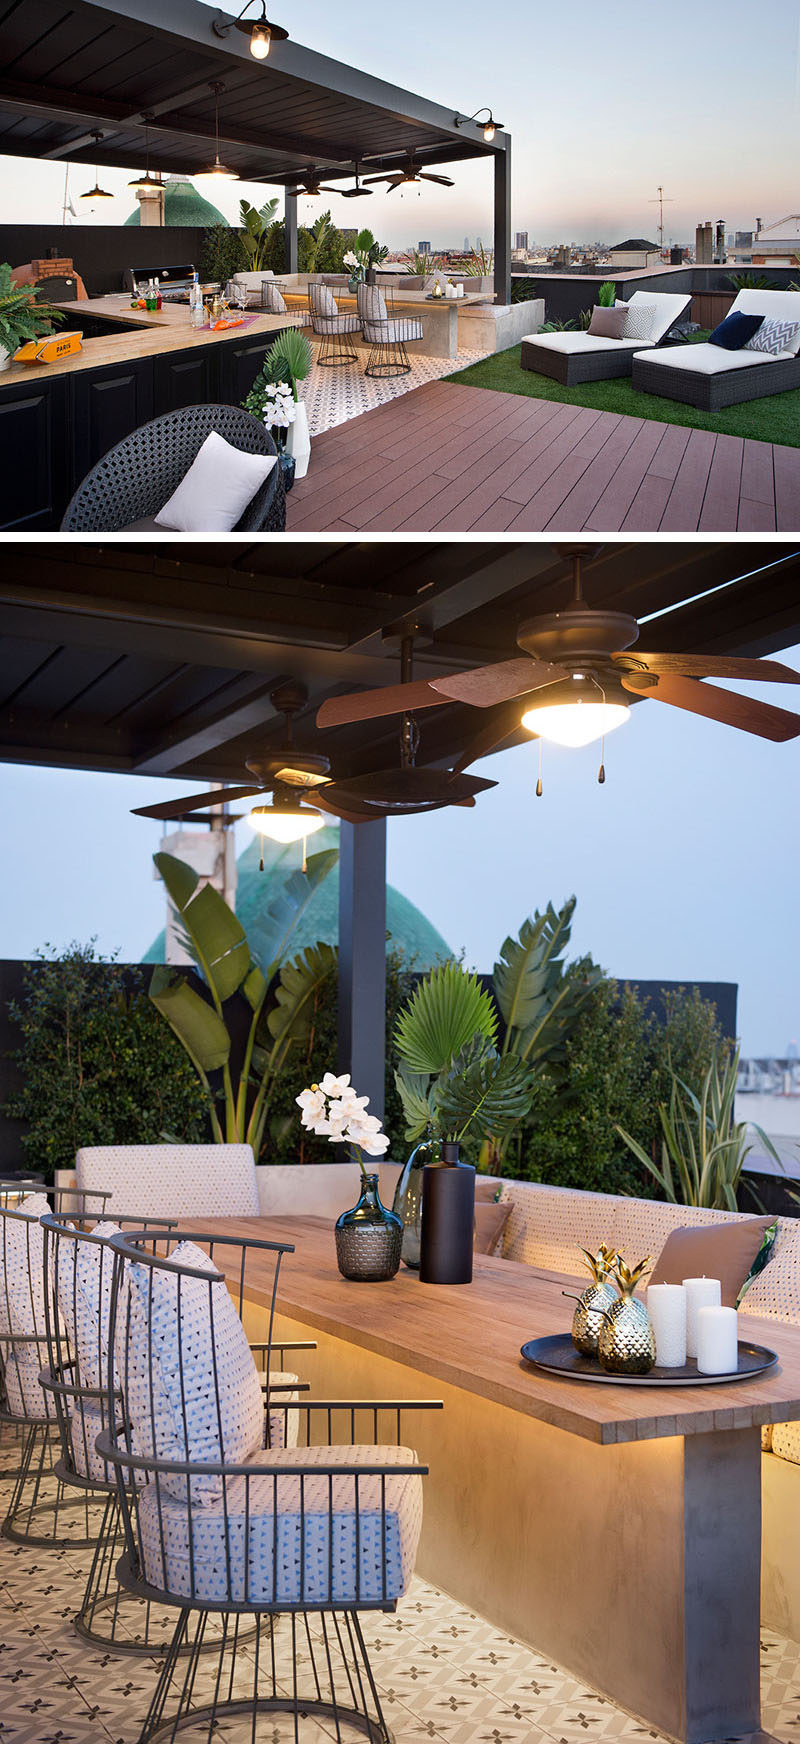 The wood path of this modern rooftop terrace leads to a covered outdoor kitchen / bar with a woodfire oven and bbq, and dining area with banquette seating and views of the city. #RooftopTerrace #OutdoorKitchen #OutdoorDining